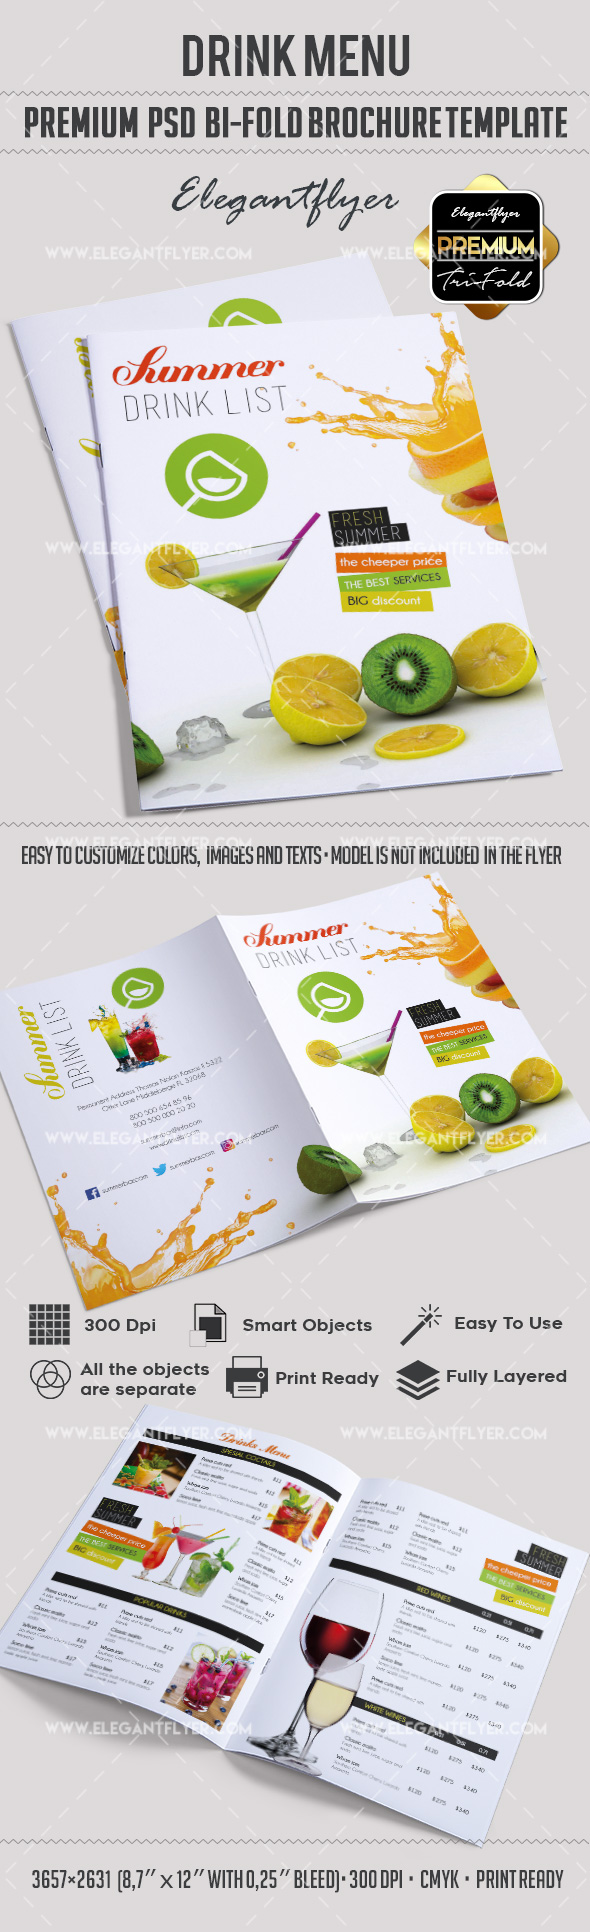 Bar Menu – Premium Bi-Fold PSD Brochure Template Food menu